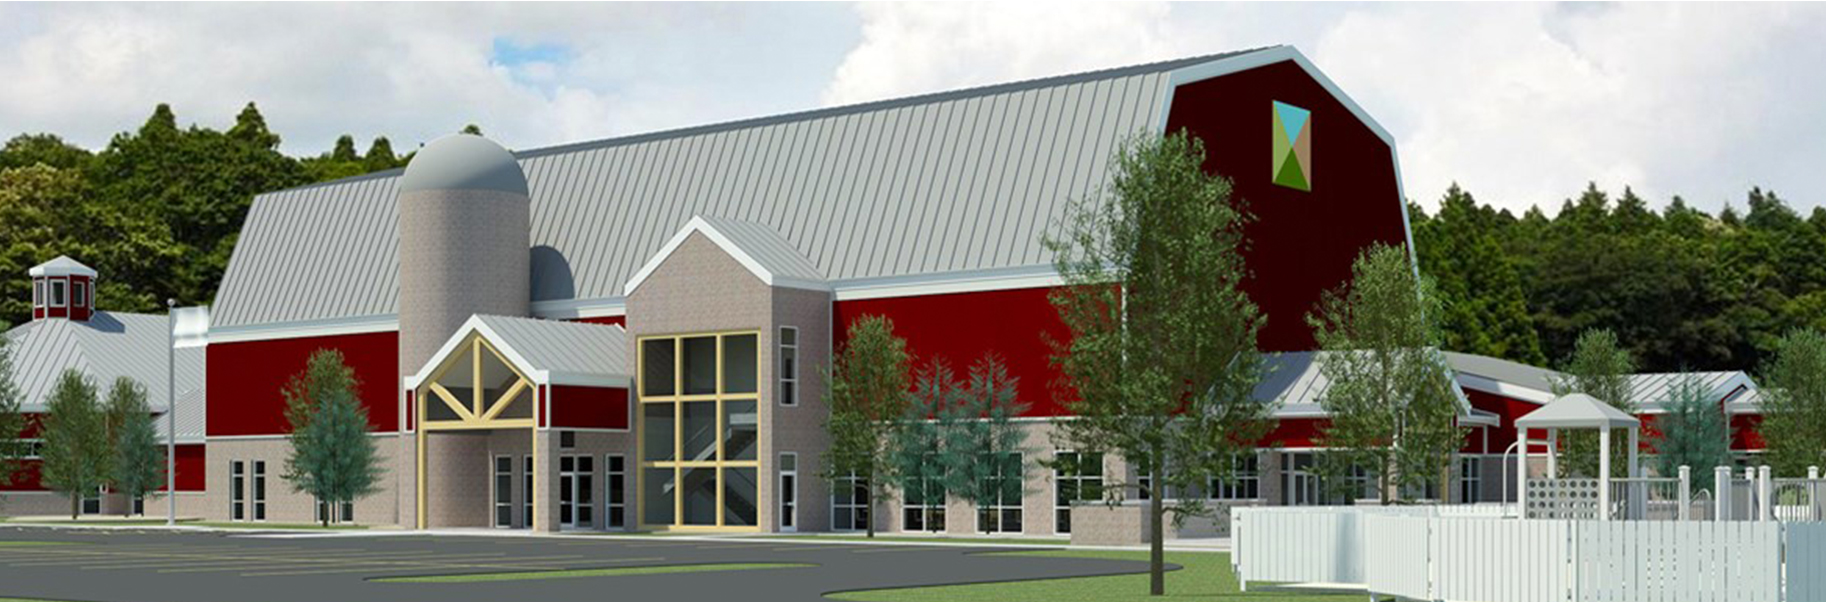 BouMatic Makes $100,000 Gift to Wisconsin Agricultural Education Center